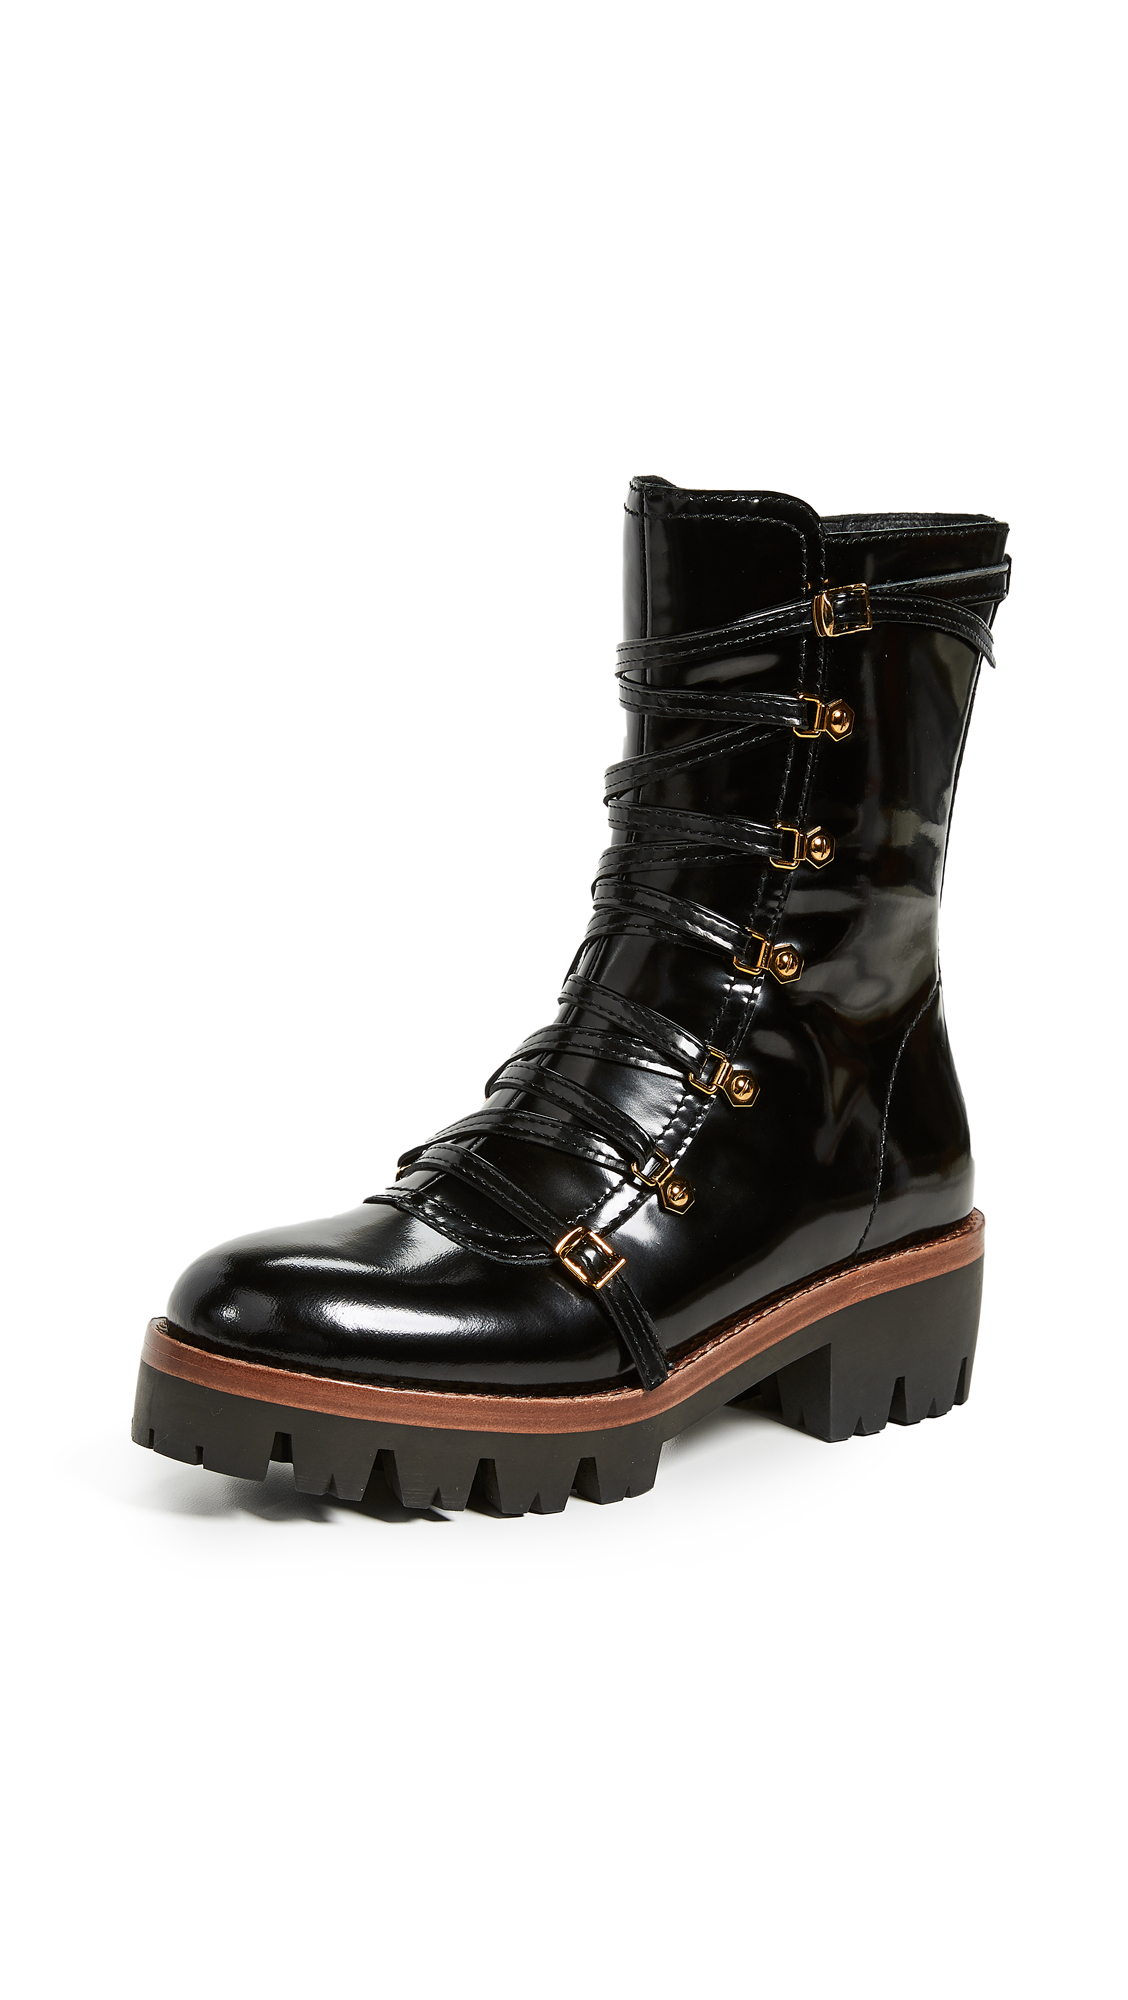 Jeffrey Campbell Combat Lug Sole Boots - Black Box